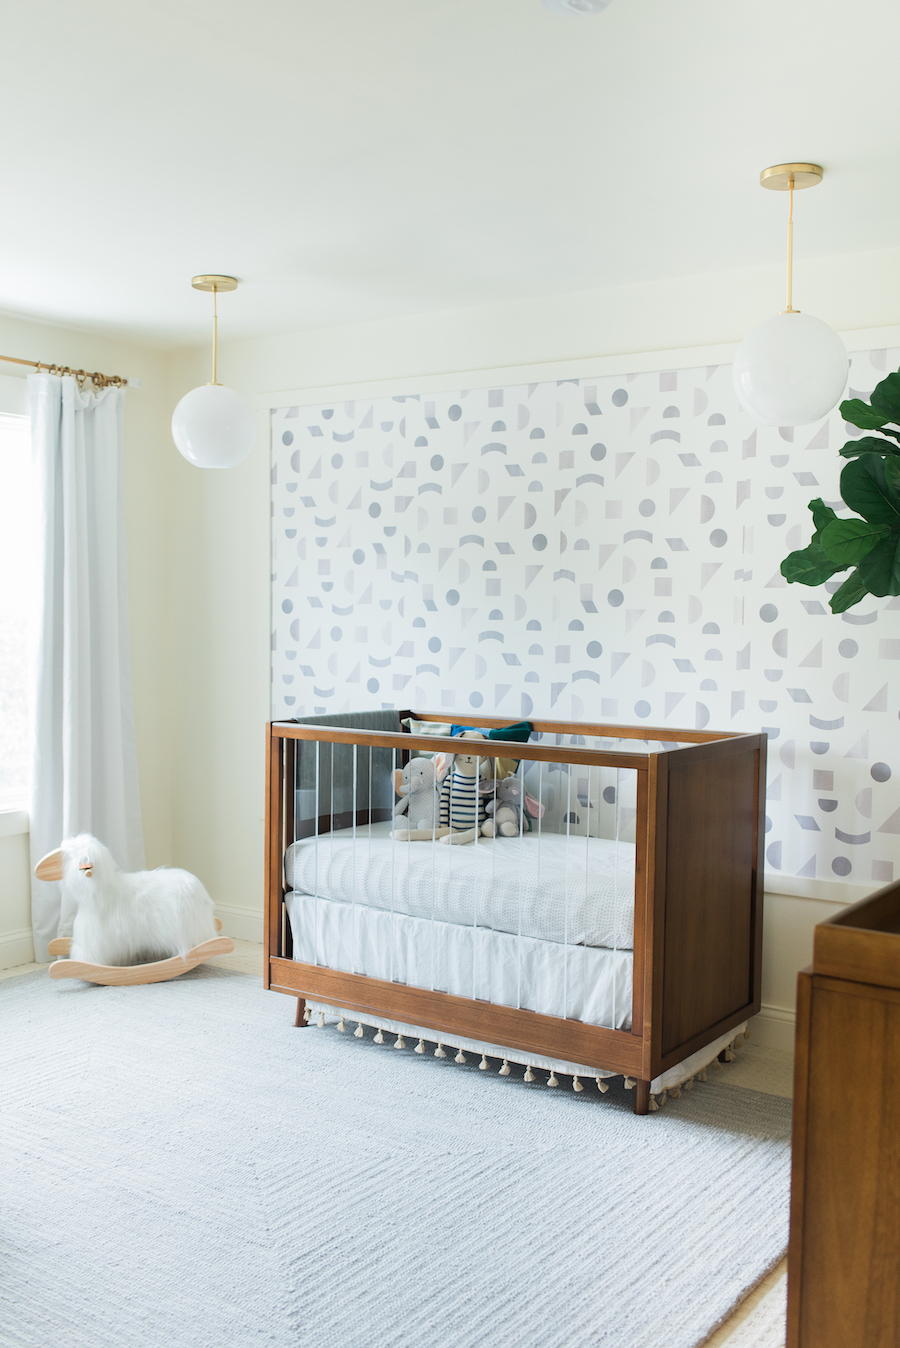 Jenna Kutcher's Nursery Reveal by Little Crown Interiors